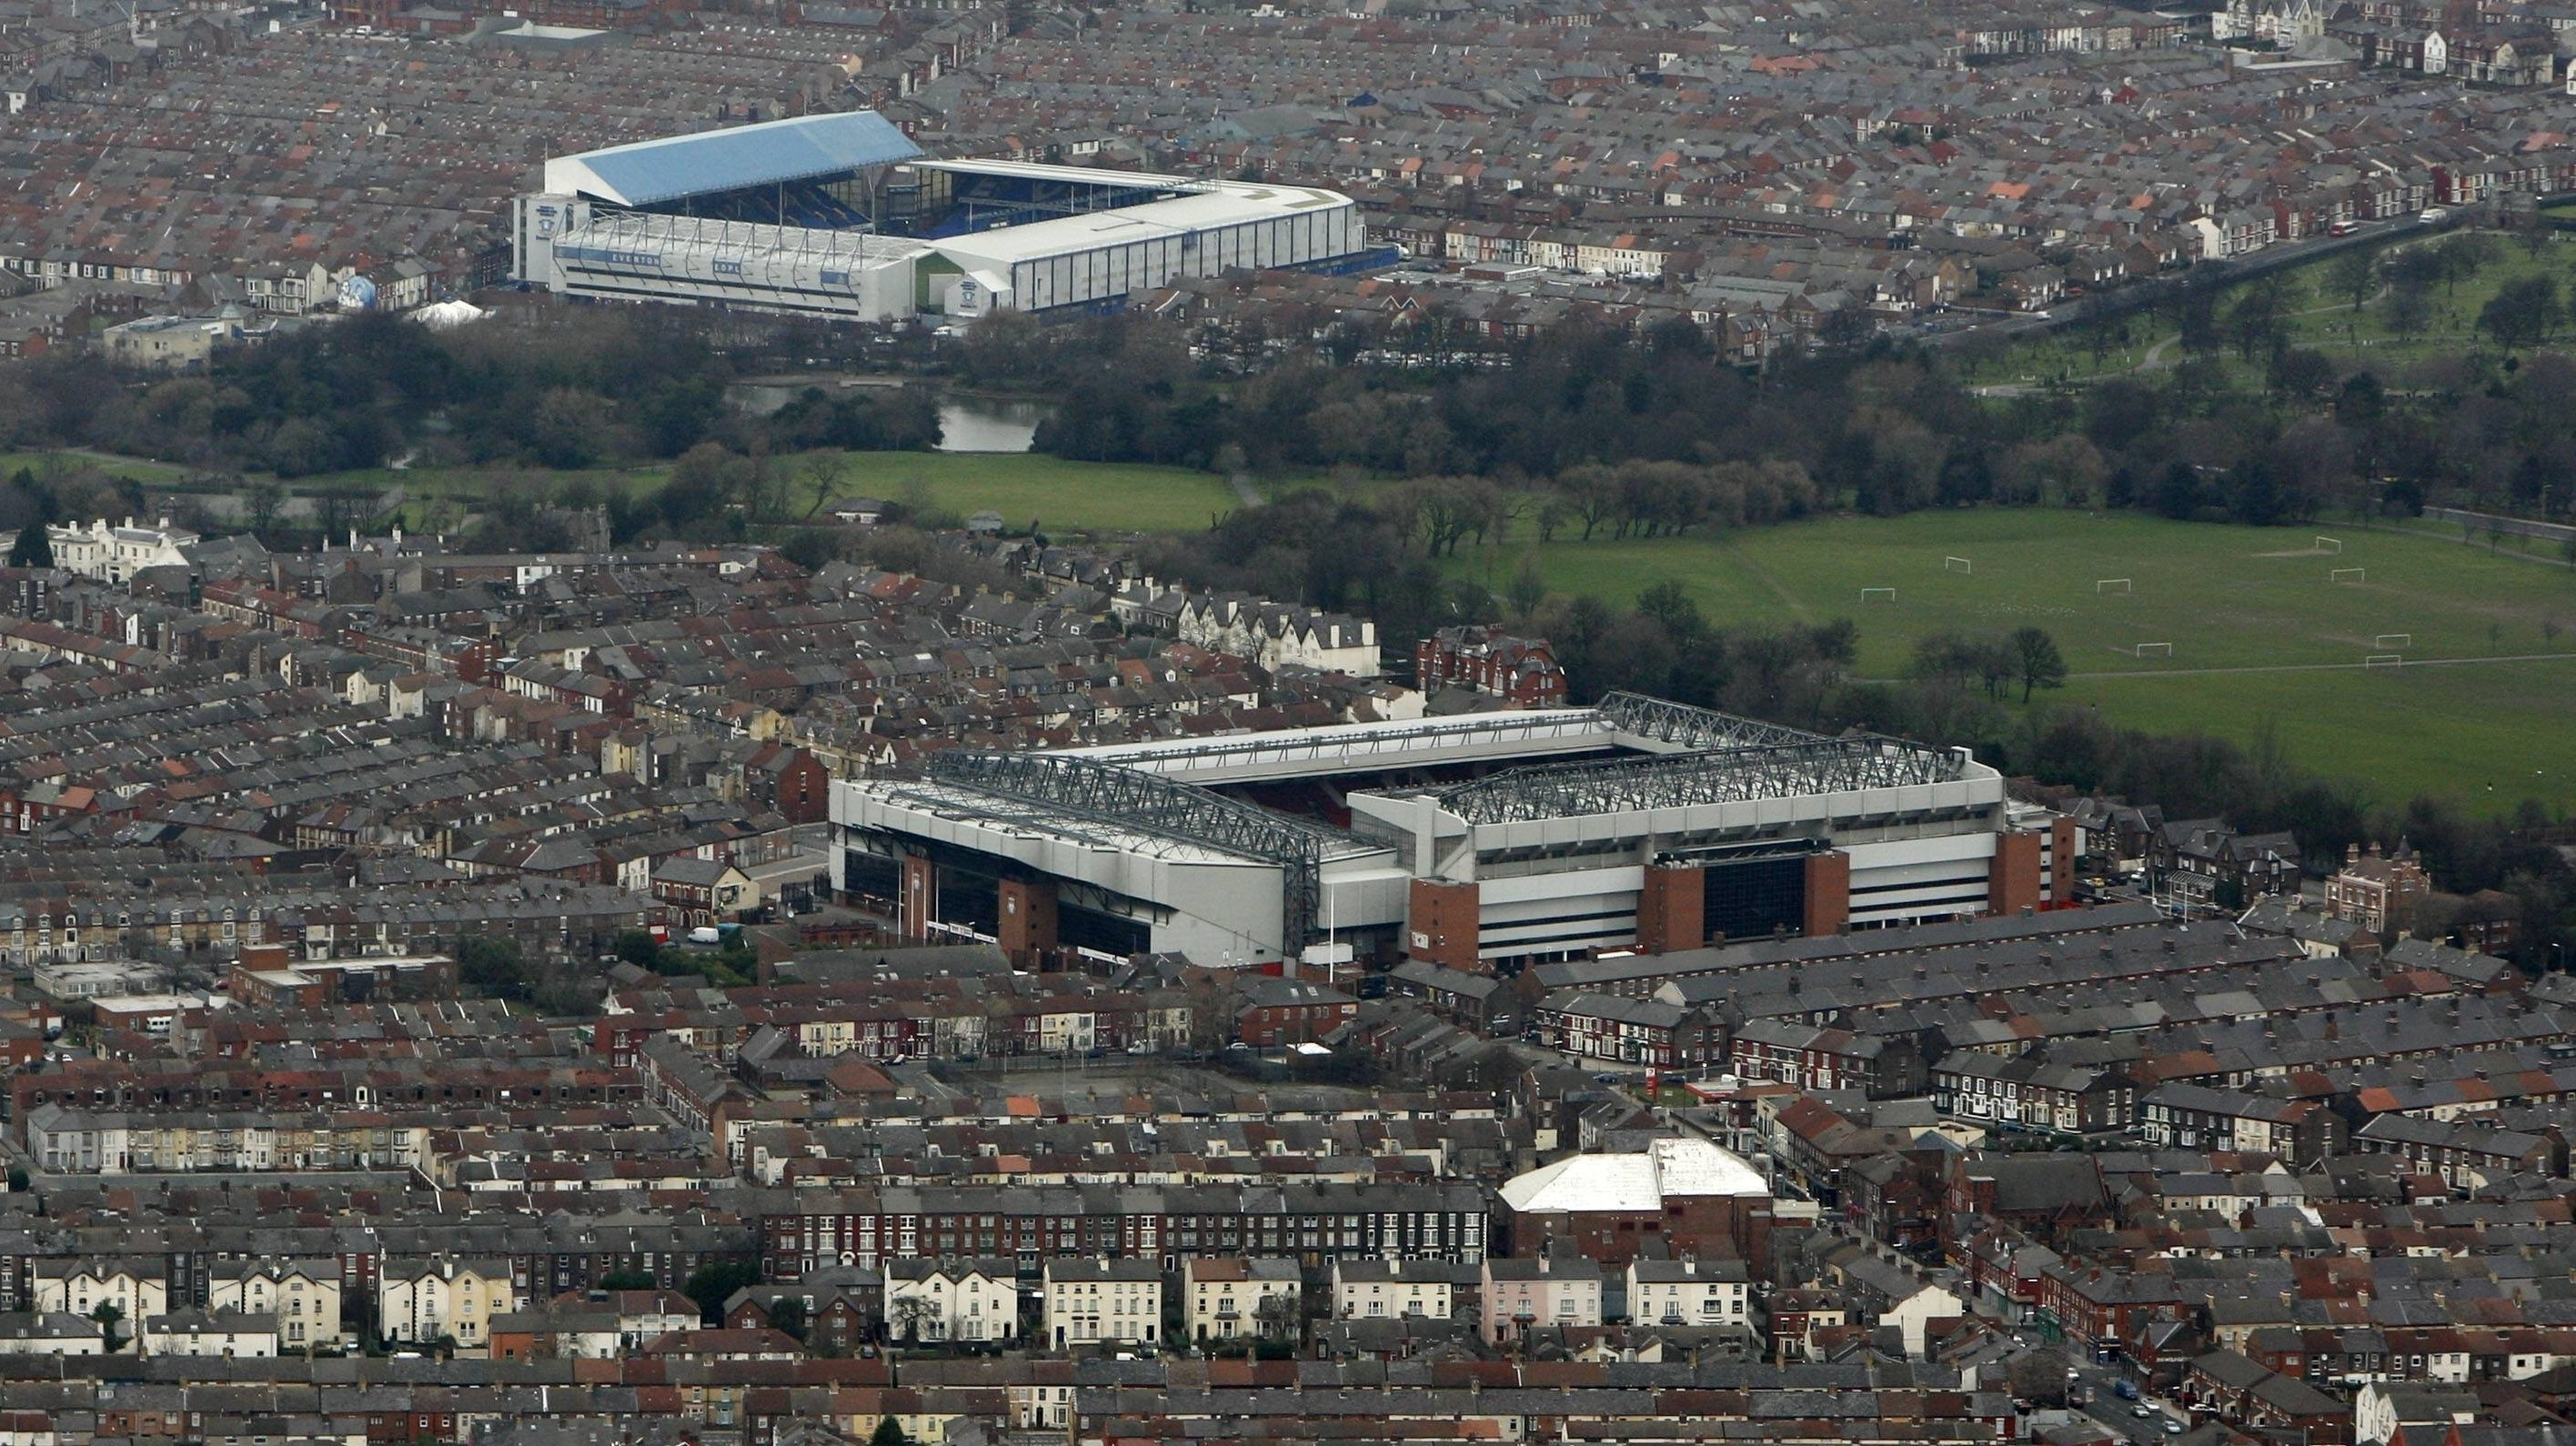 Merseyside derby to take place at Goodison Park - Liverpool could claim  Premier League title | Transfermarkt